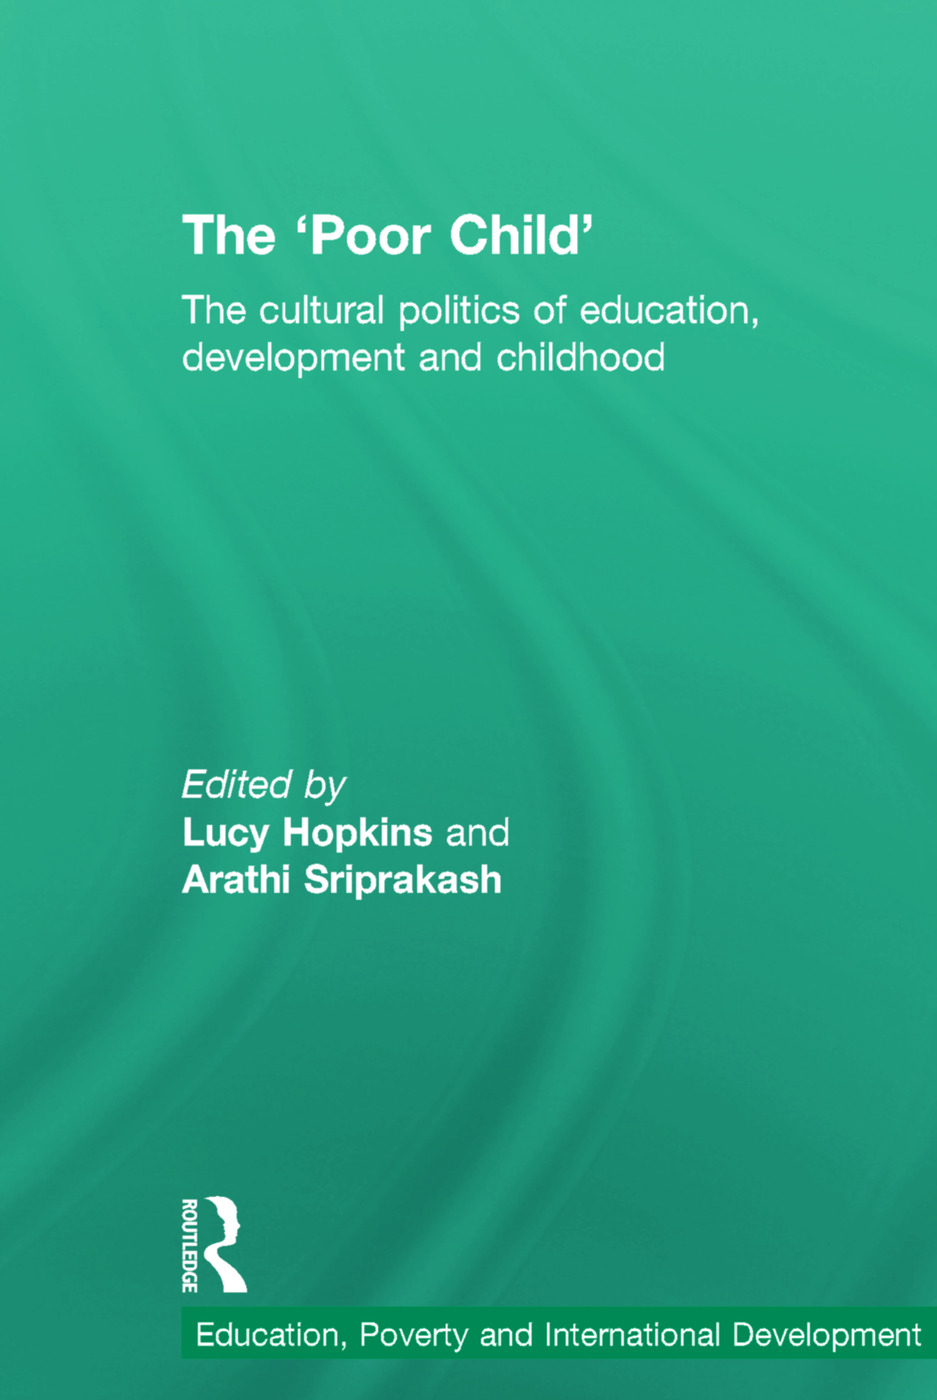 The 'Poor Child': The cultural politics of education, development and childhood book cover